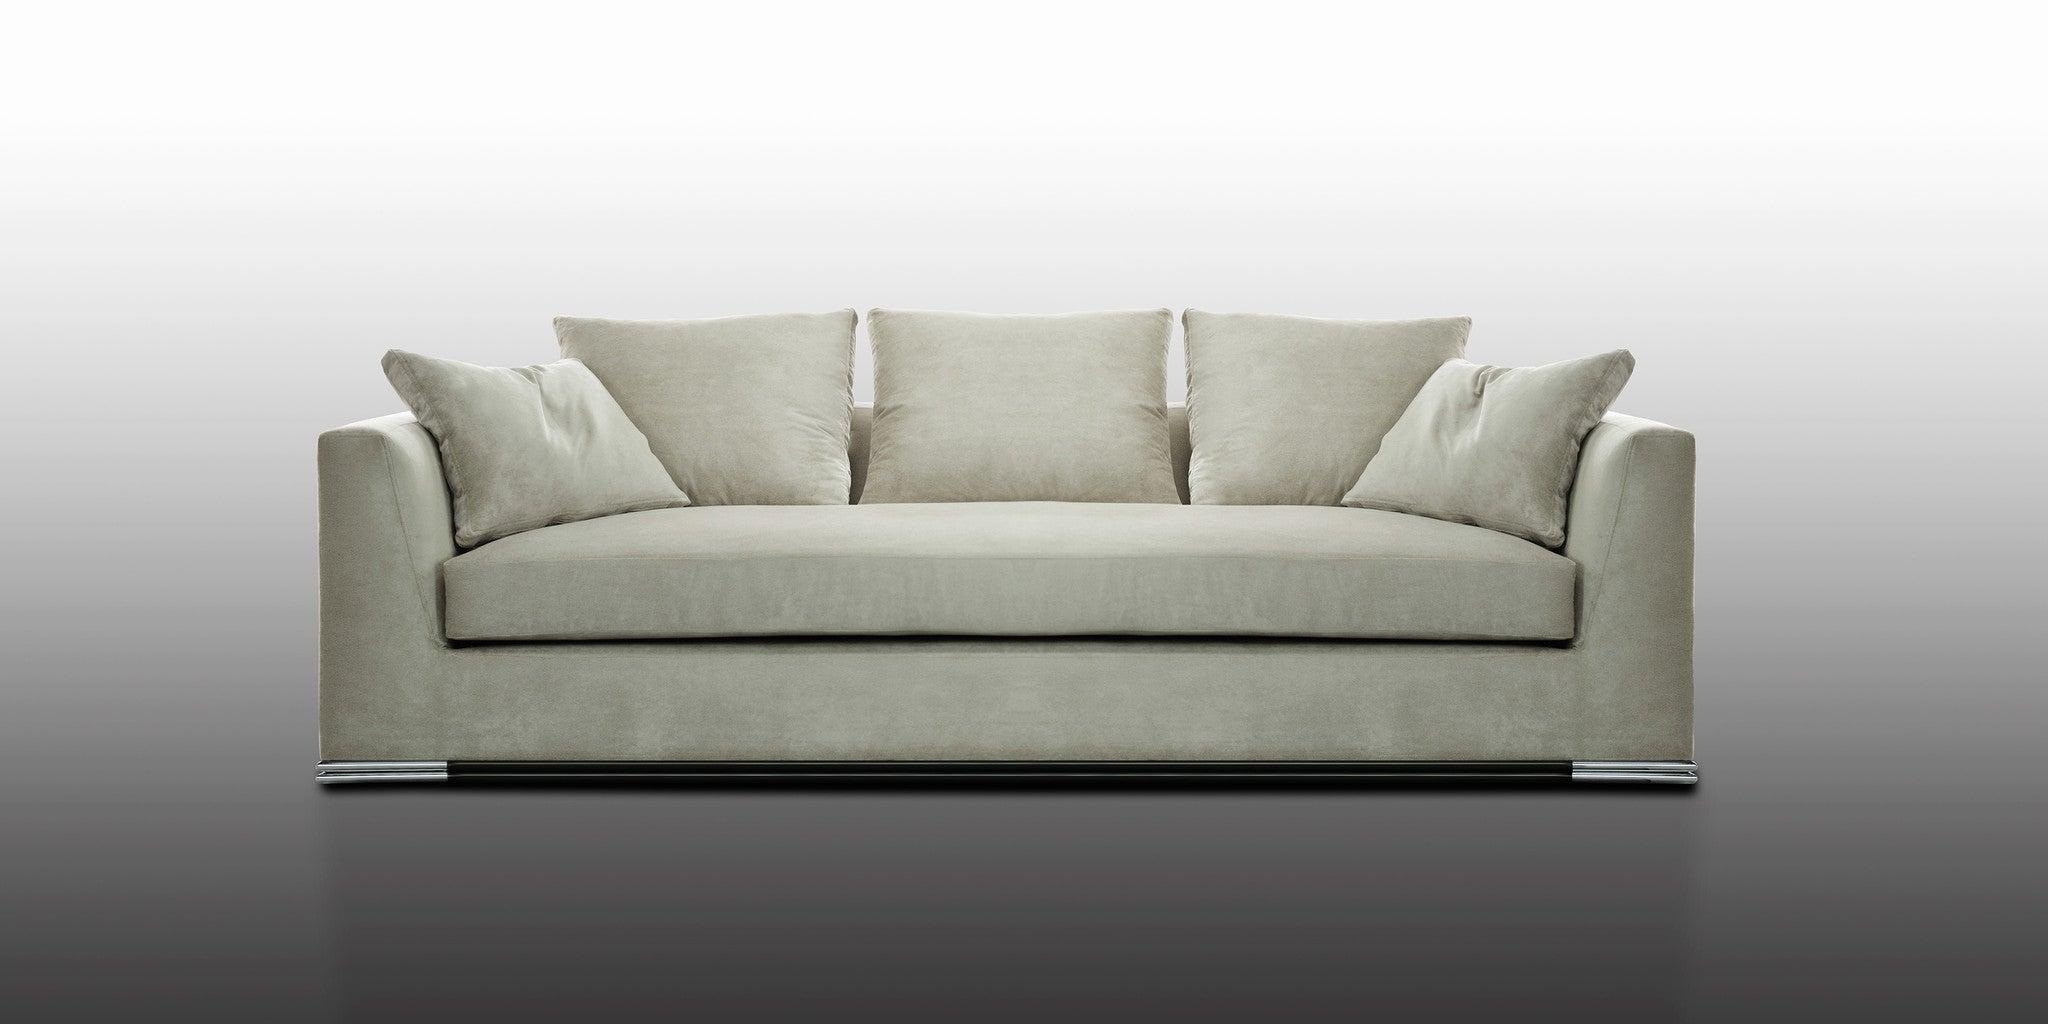 Architecte bumper sofa modern american furniture orlando for American home furniture orlando